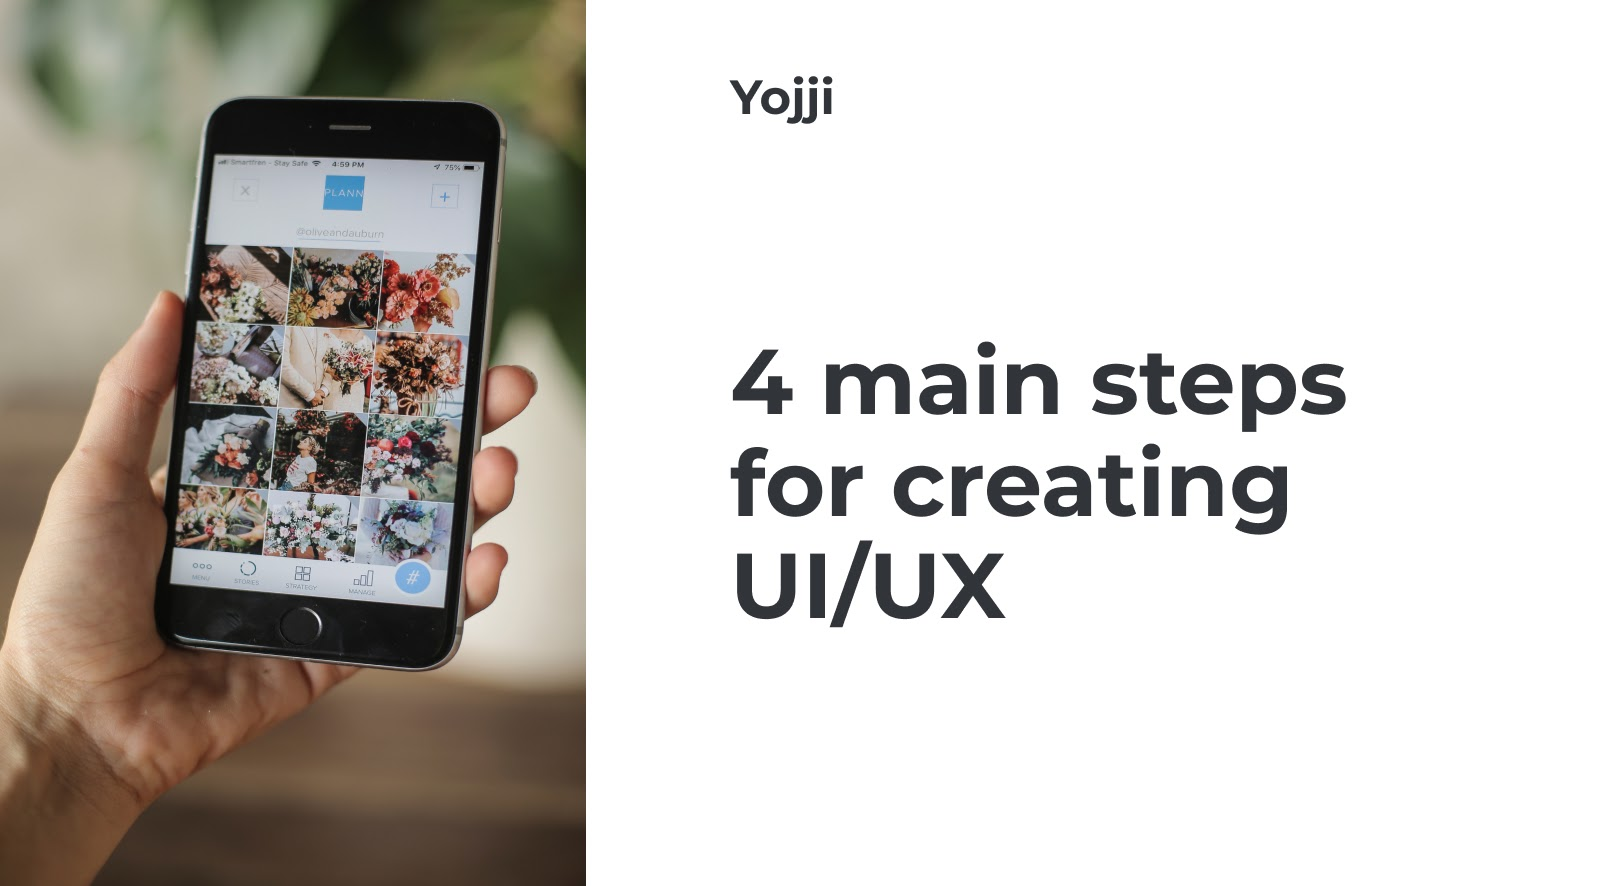 4 main steps for creating UI/UX: the structure of the design process